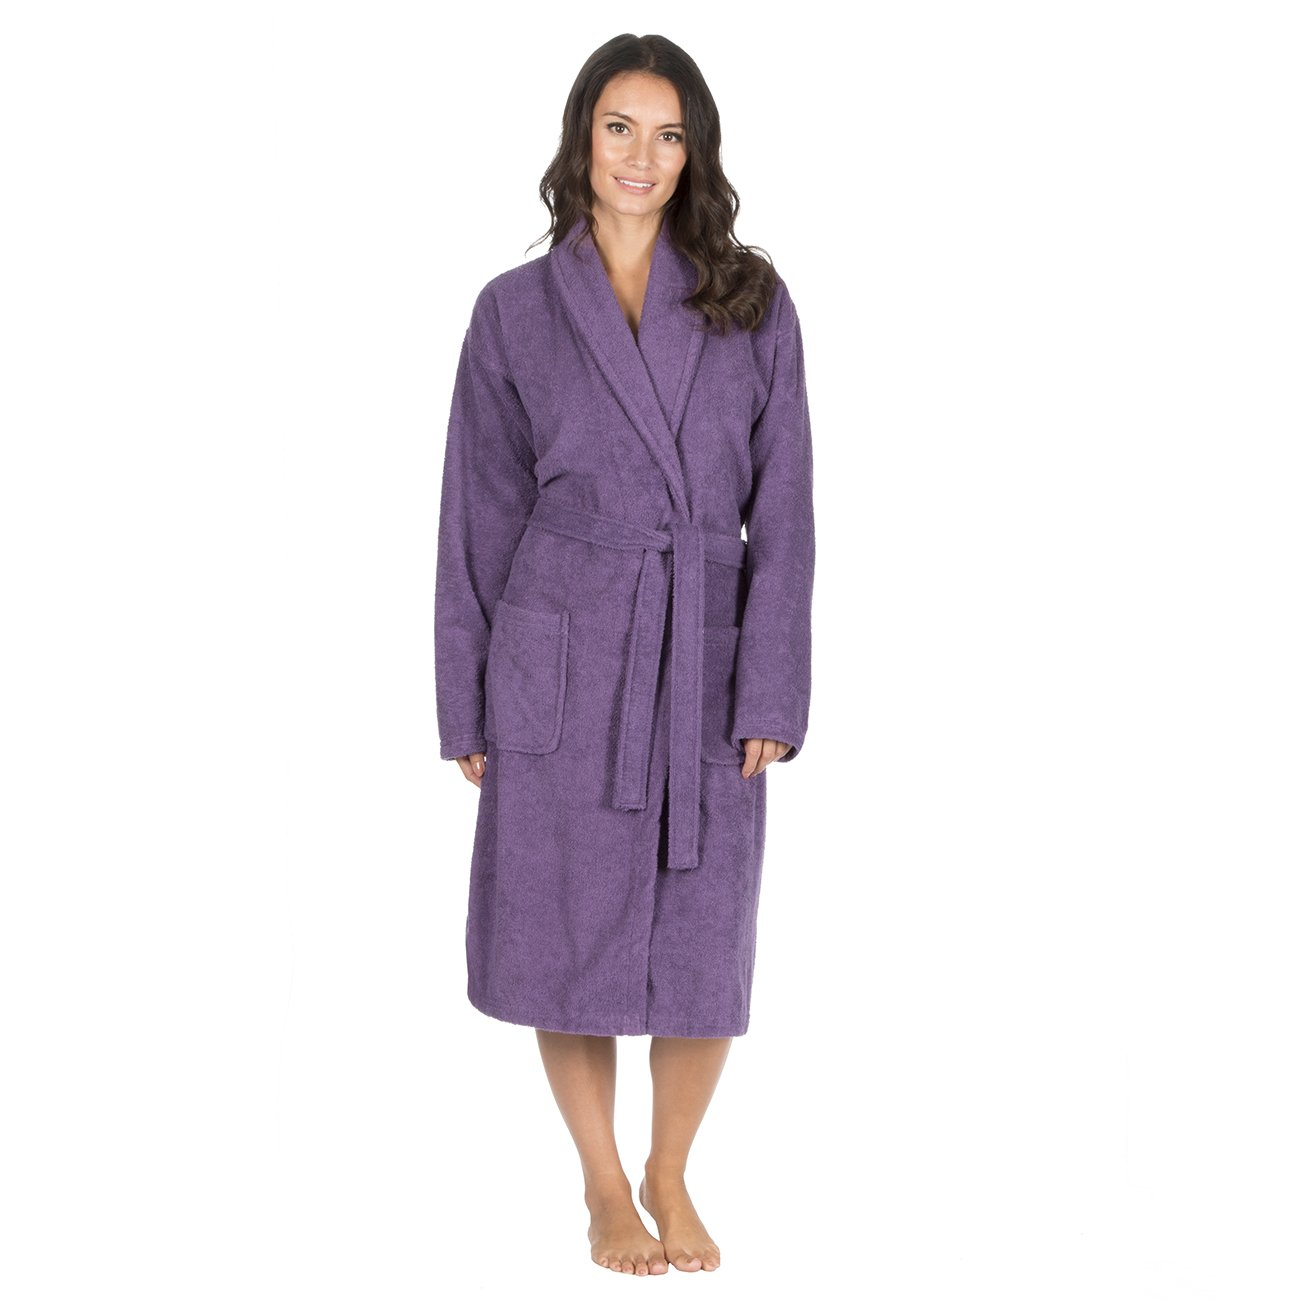 Forever Dreaming Womens Luxury French Towelling Bath Robe - 100% Cotton  Shawl Collar Dressing Gown  Amazon.co.uk  Clothing 05a55fc56